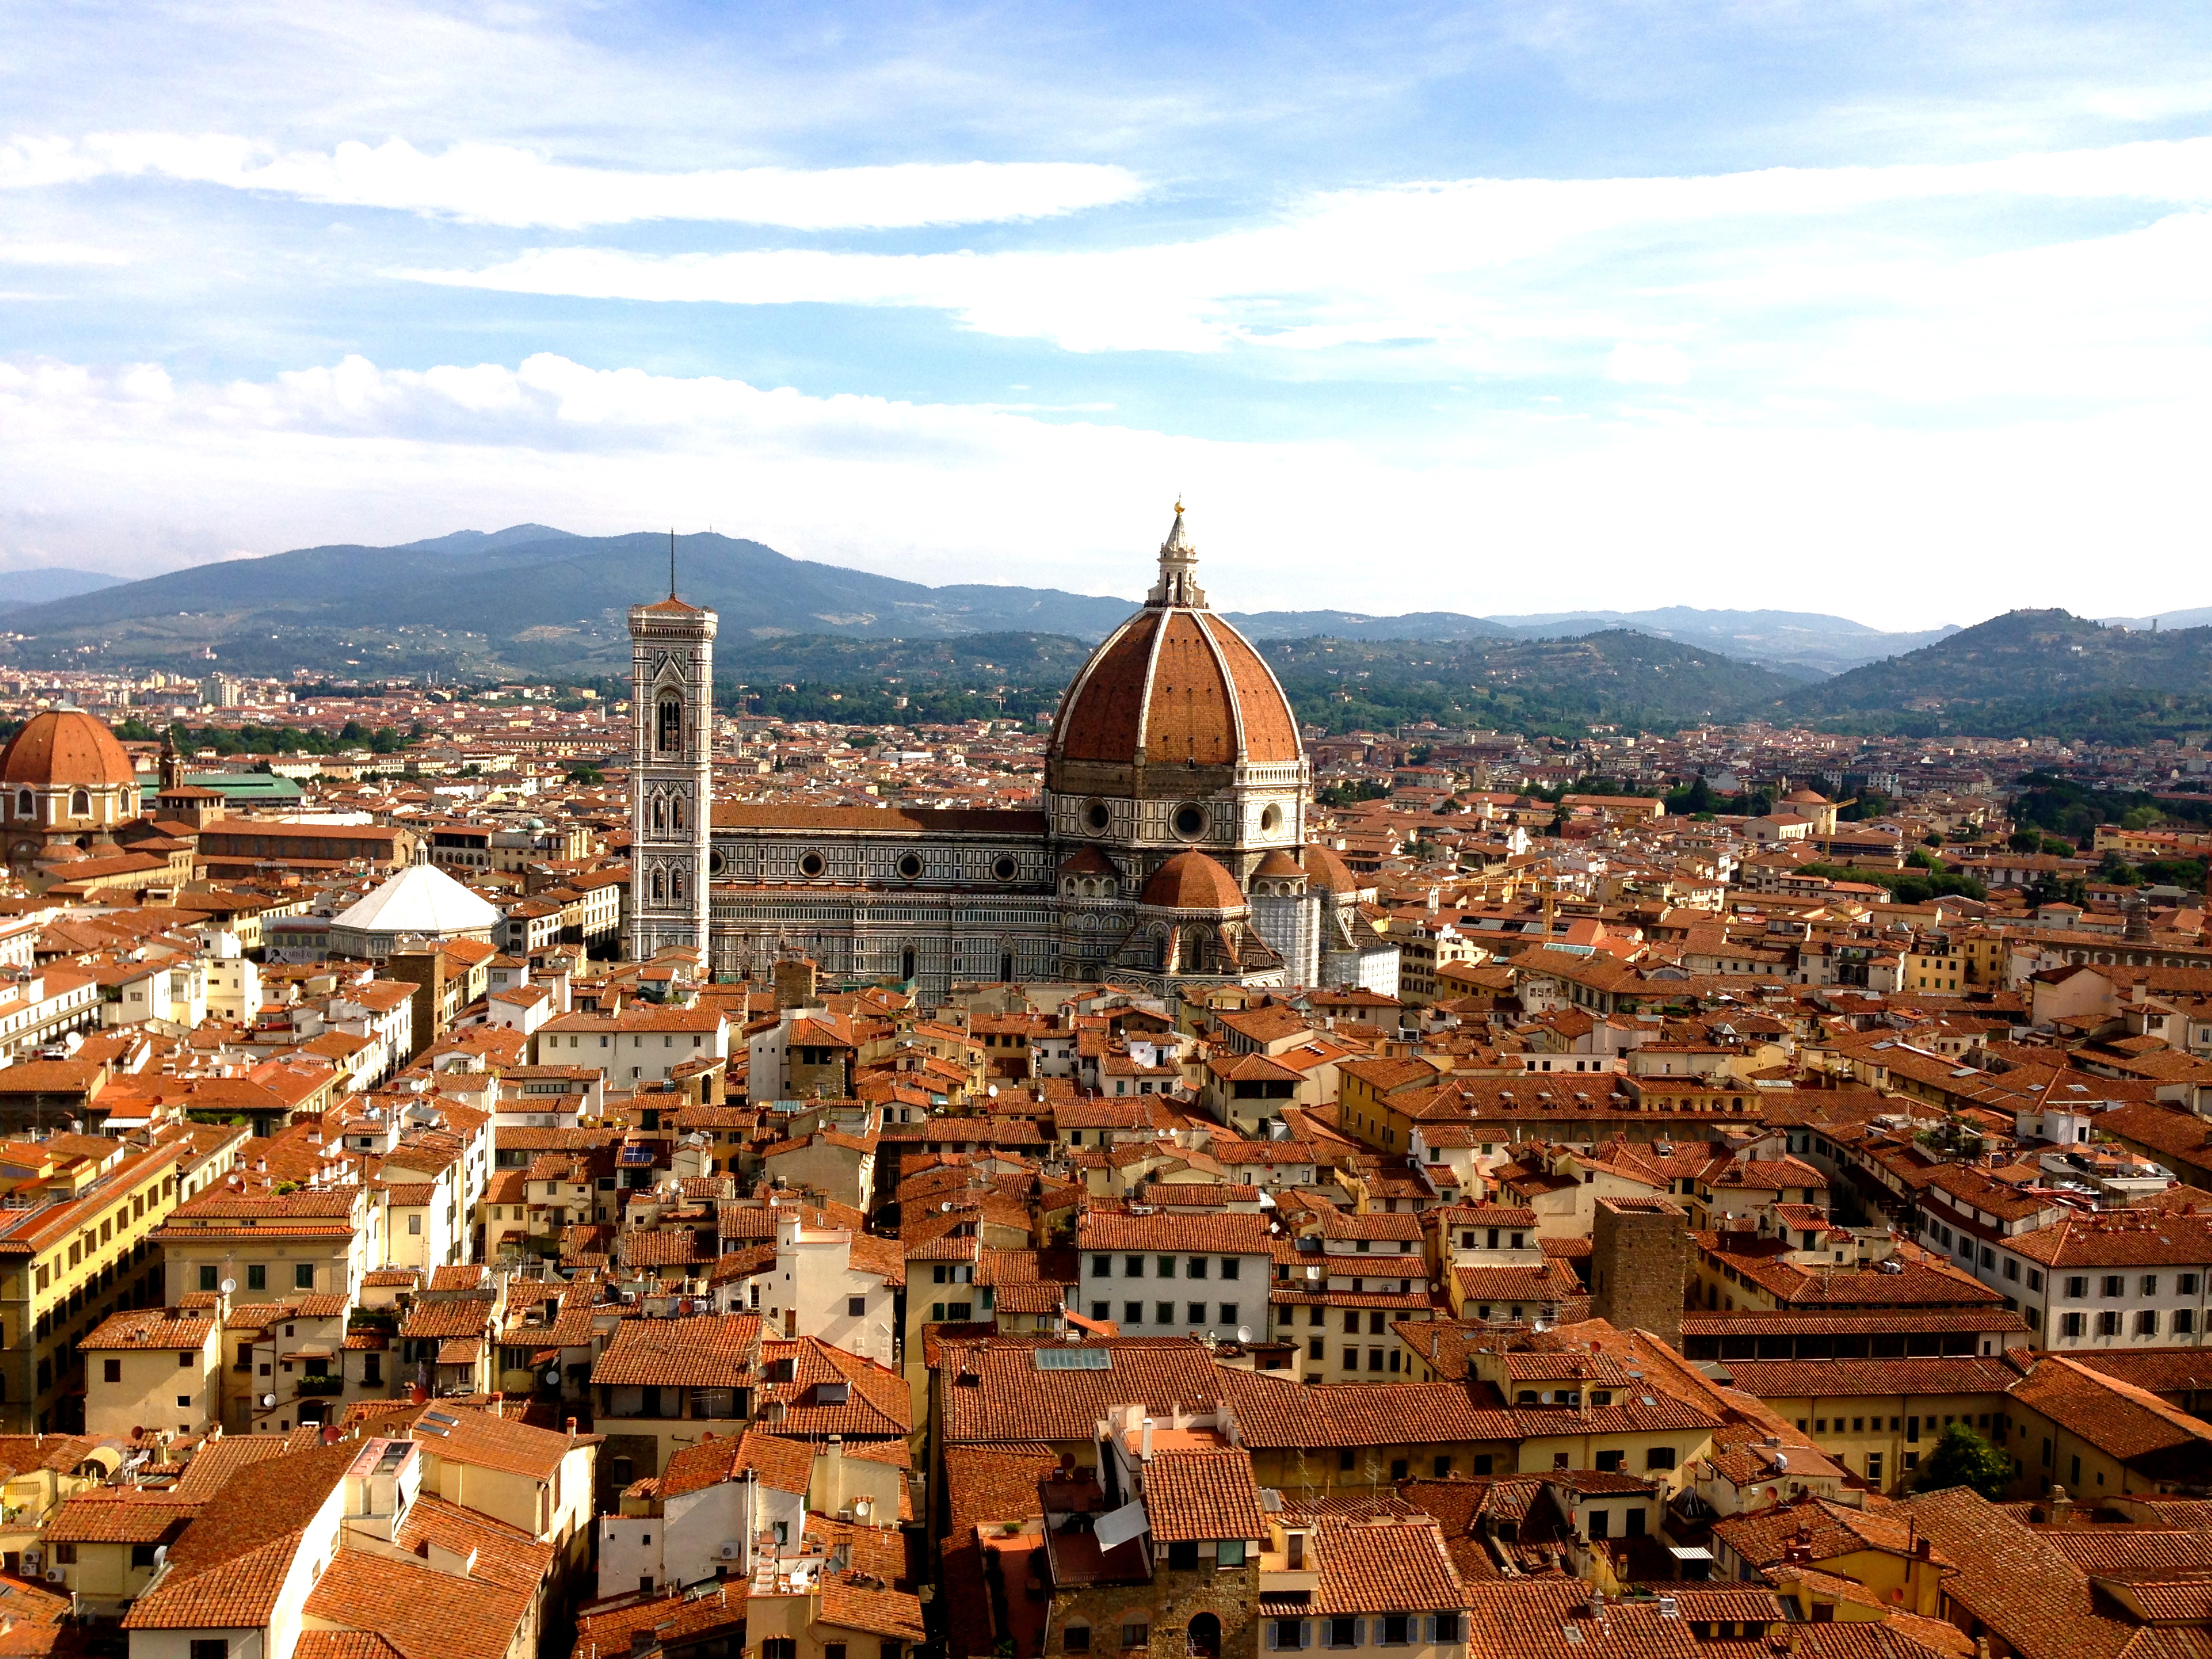 Italian Florence: Is There Room For Another View